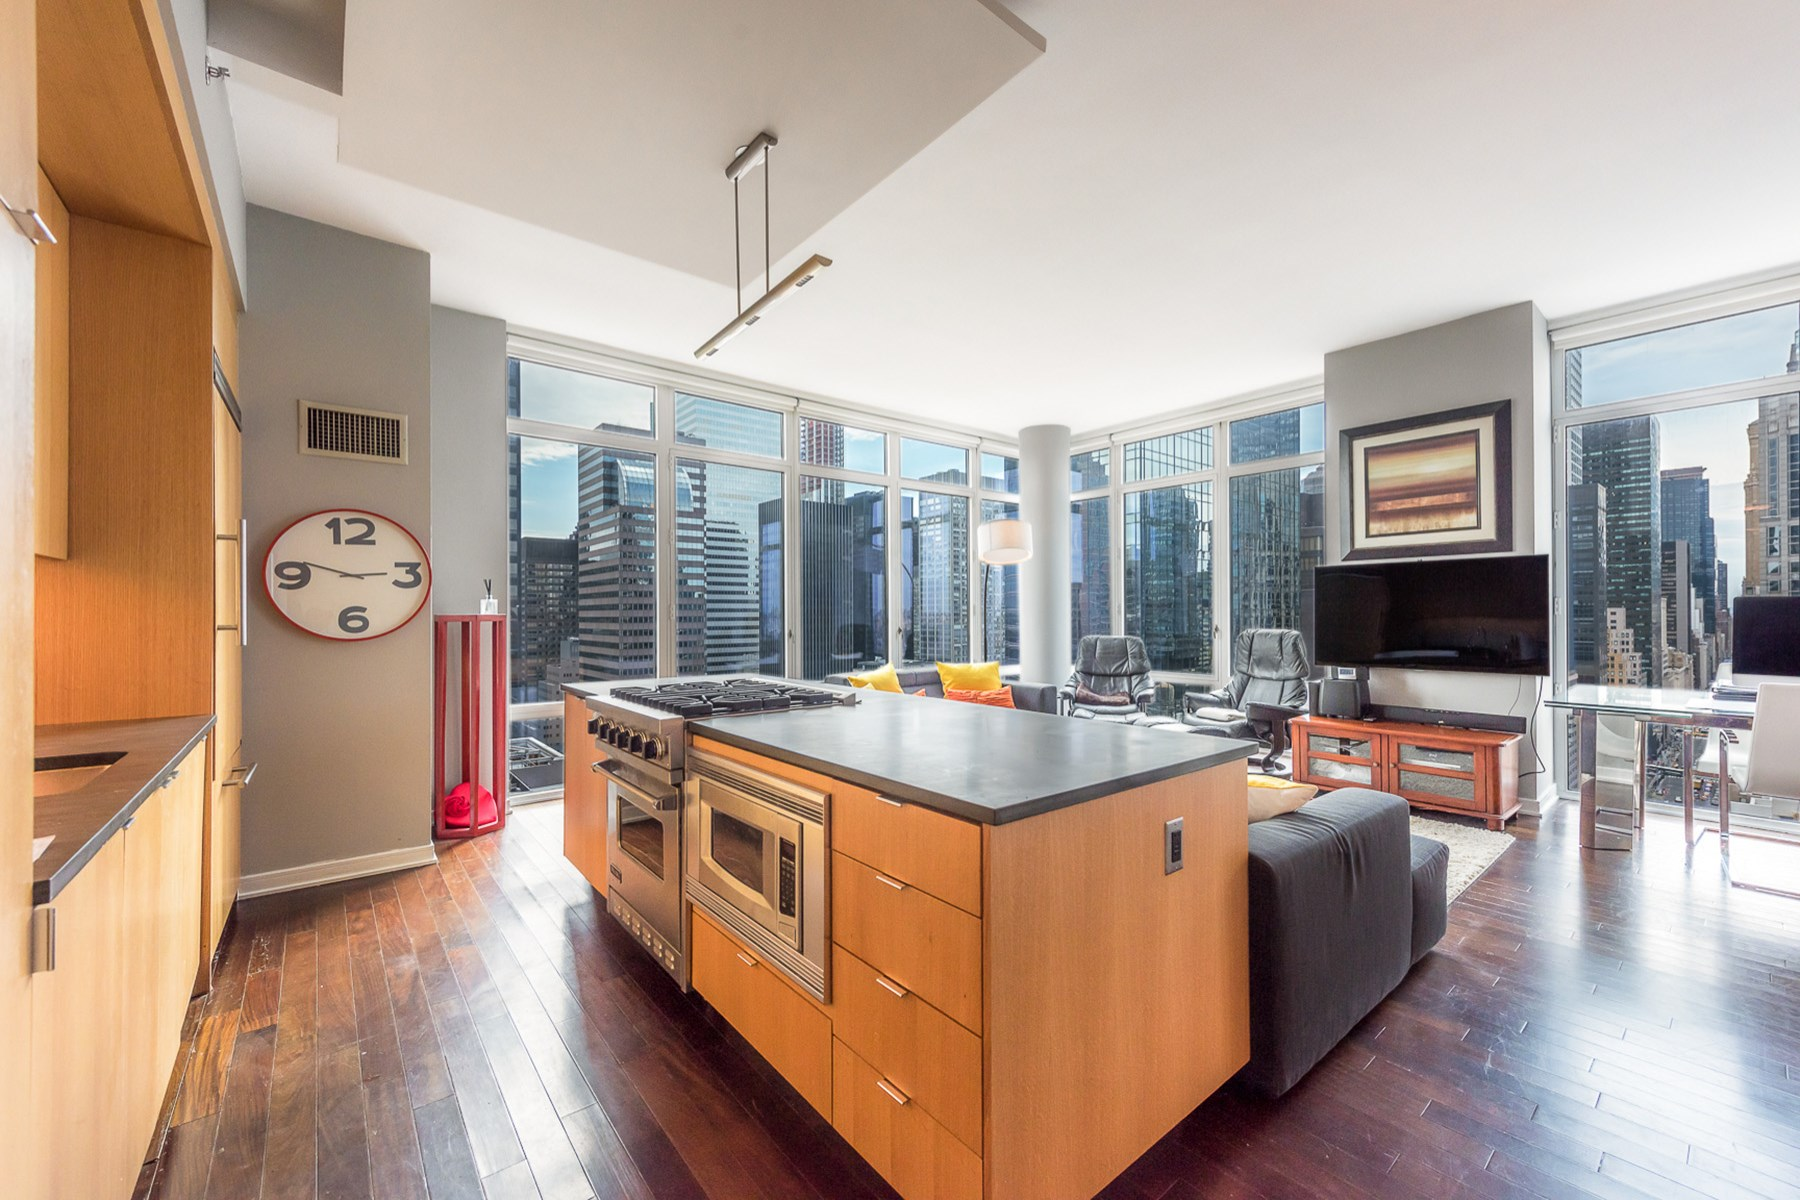 Condominium for Sale at 207 East 57th Street, 28B 207 East 57th Street Apt 28B Midtown East, New York, New York, 10022 United States